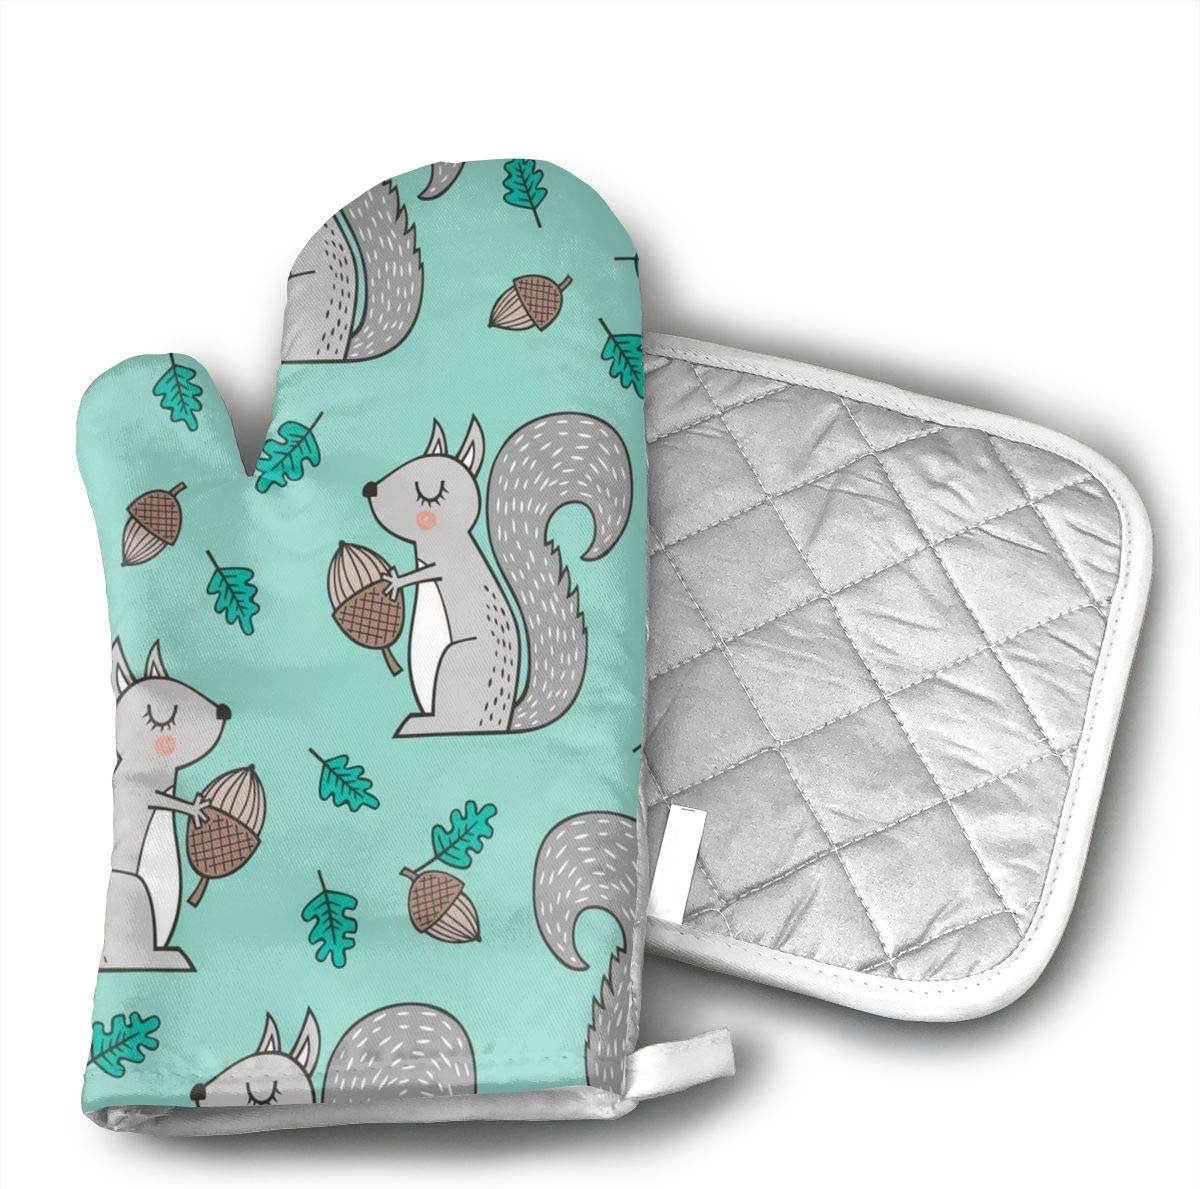 BenteLi Forest Squirrels with Leaves Acorn Autumn Fall On Mint Green Oven Mitts,Professional Heat Resistant Microwave Oven Insulation Thickening Gloves Soft Inner Lining Kitchen Cooking Mittens